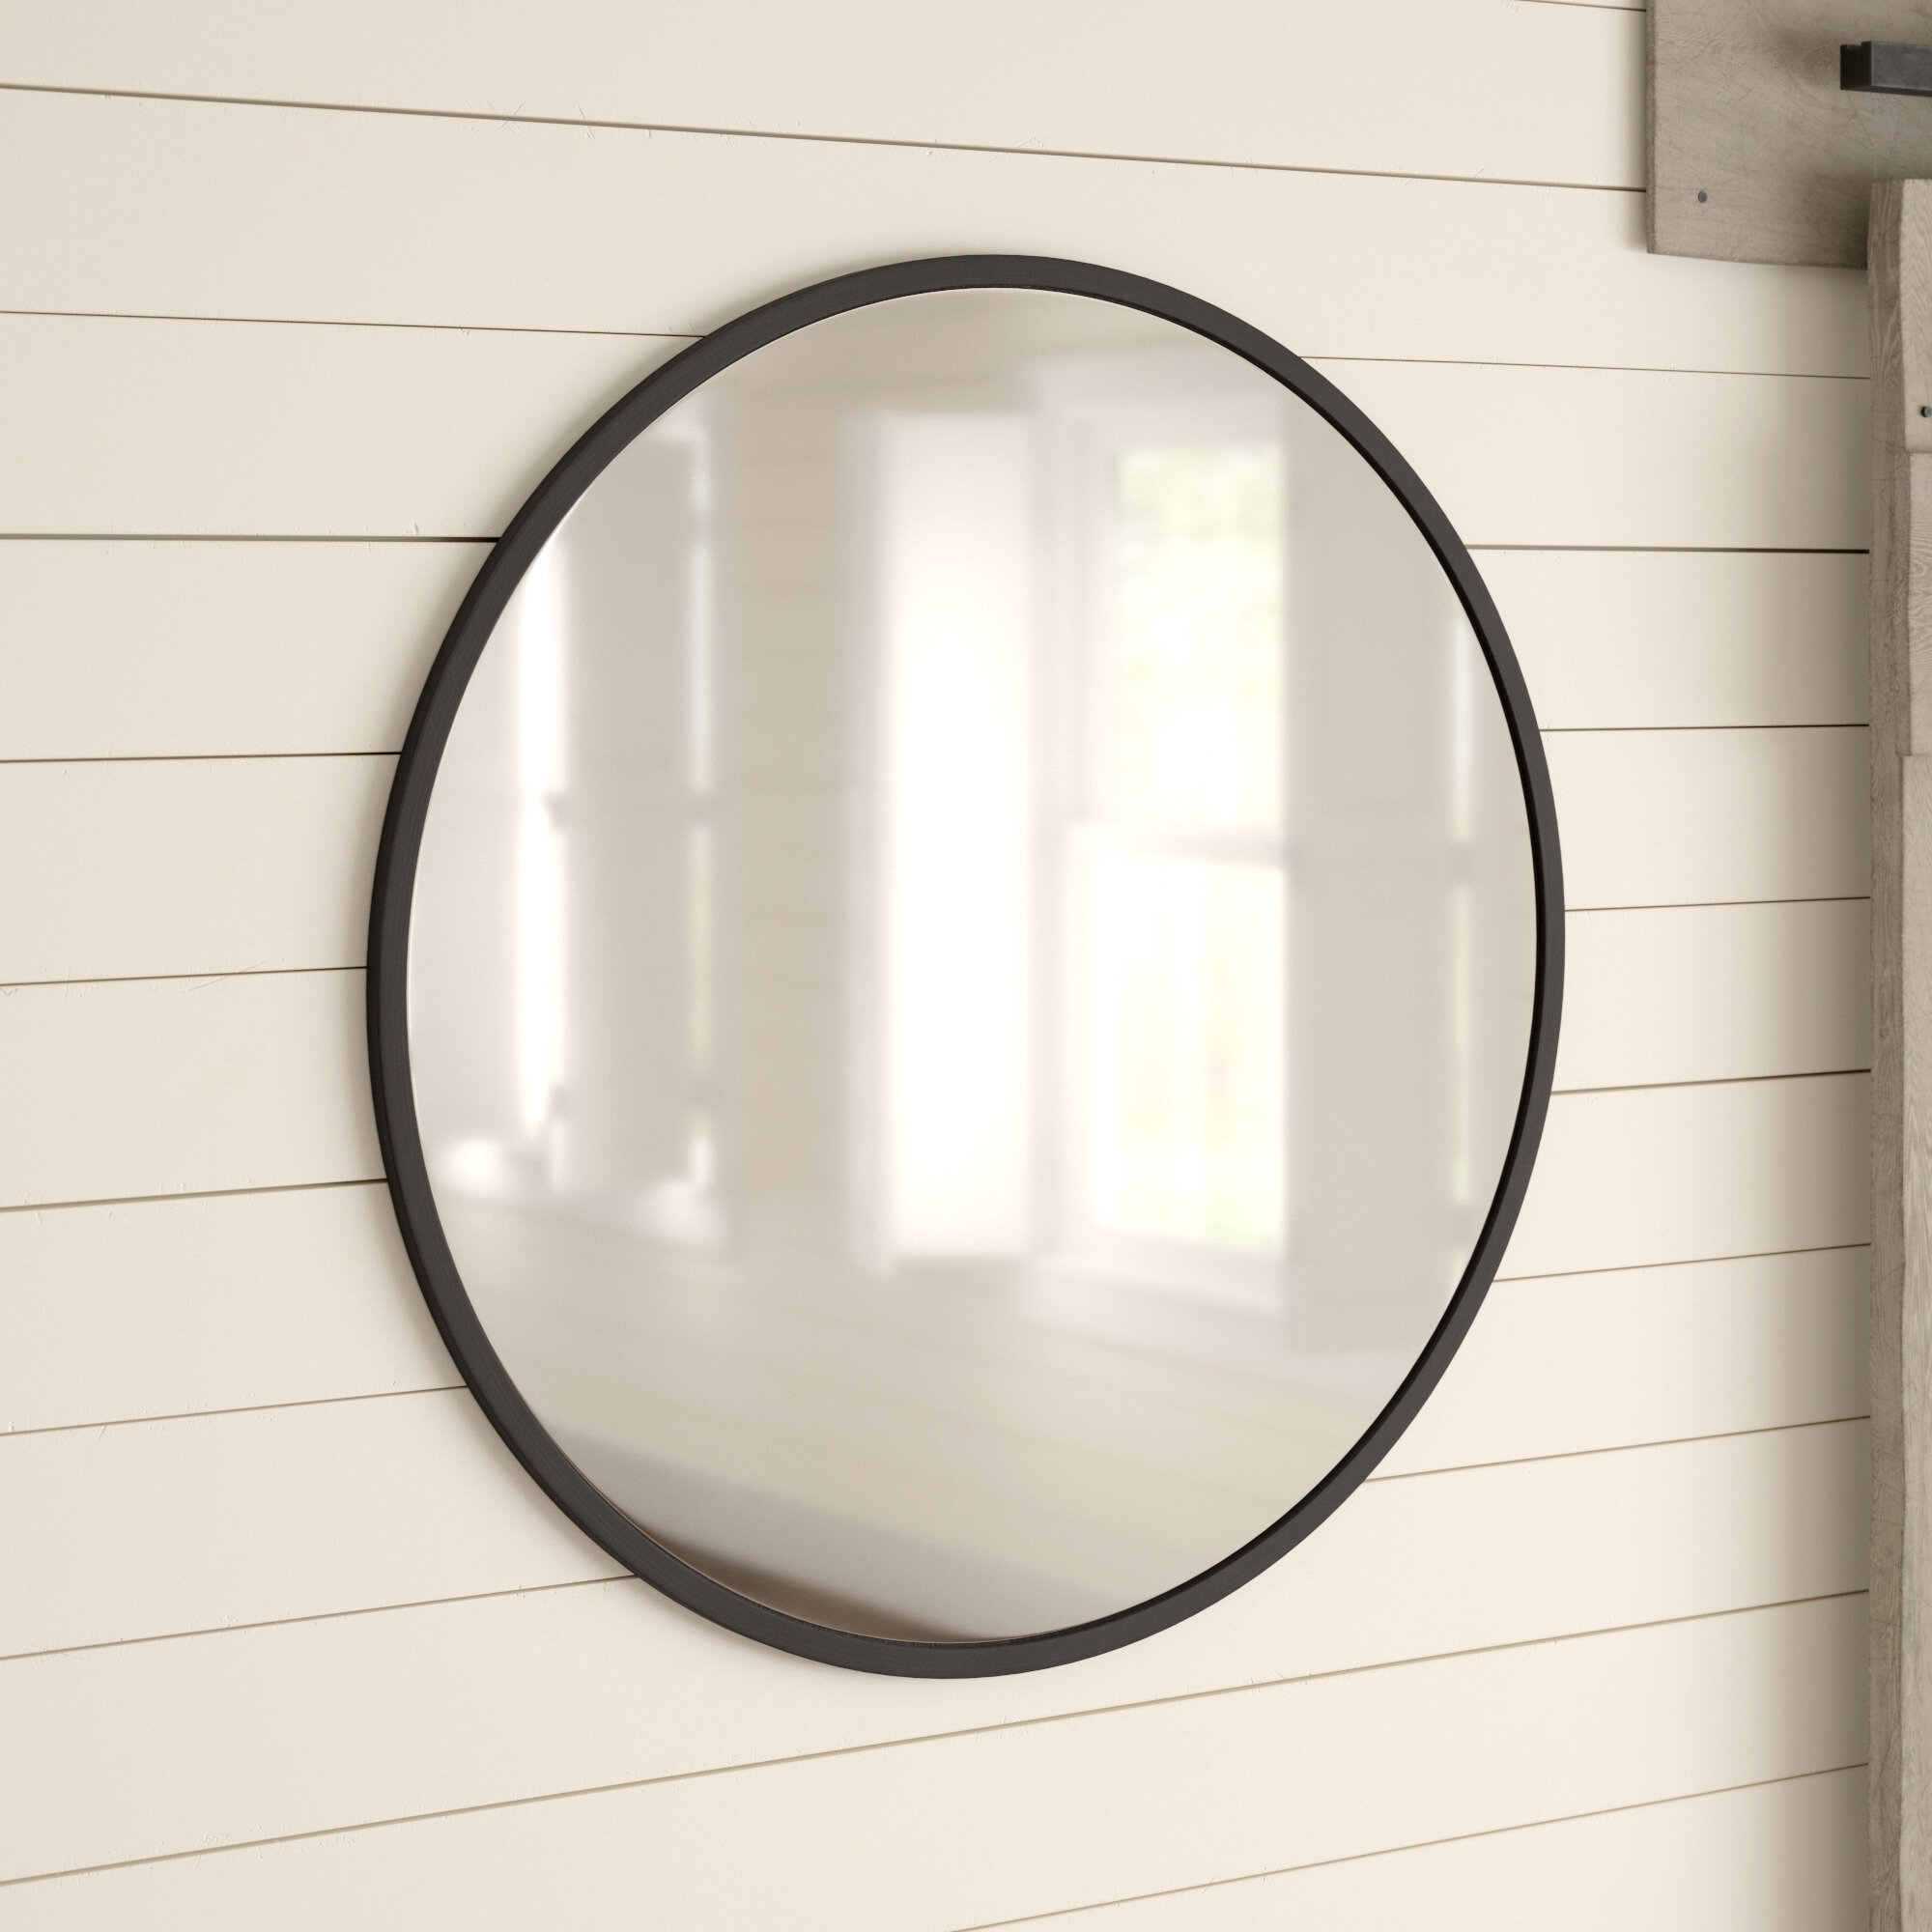 Umbra Hub Modern And Contemporary Accent Mirror With Menachem Modern & Contemporary Accent Mirrors (Image 27 of 30)